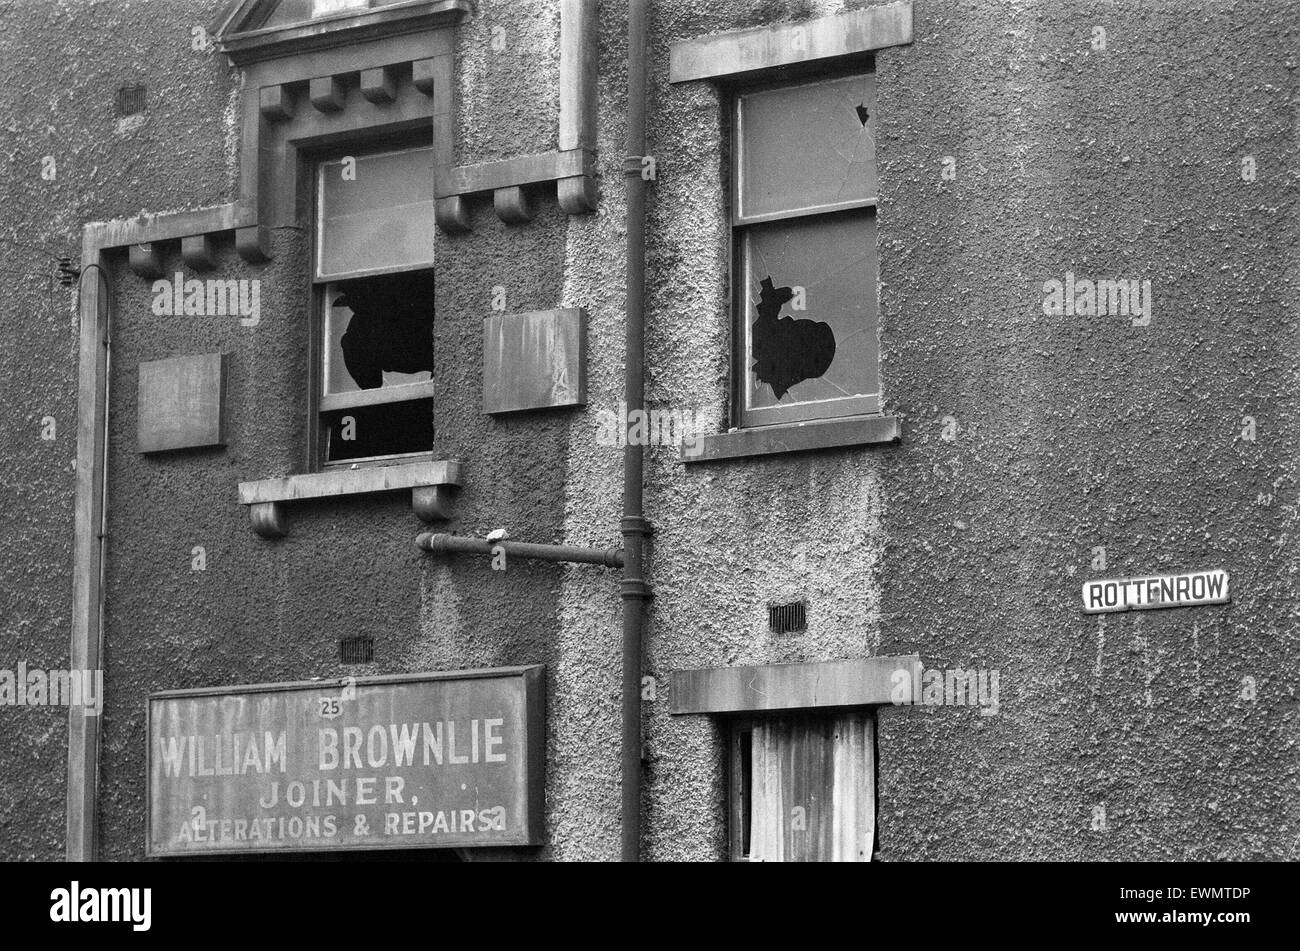 Derelict Building, Rottenrow, Glasgow, Scotland, 6th March 1971. Face of Britain 1971 Feature. William Brownlie Stock Photo